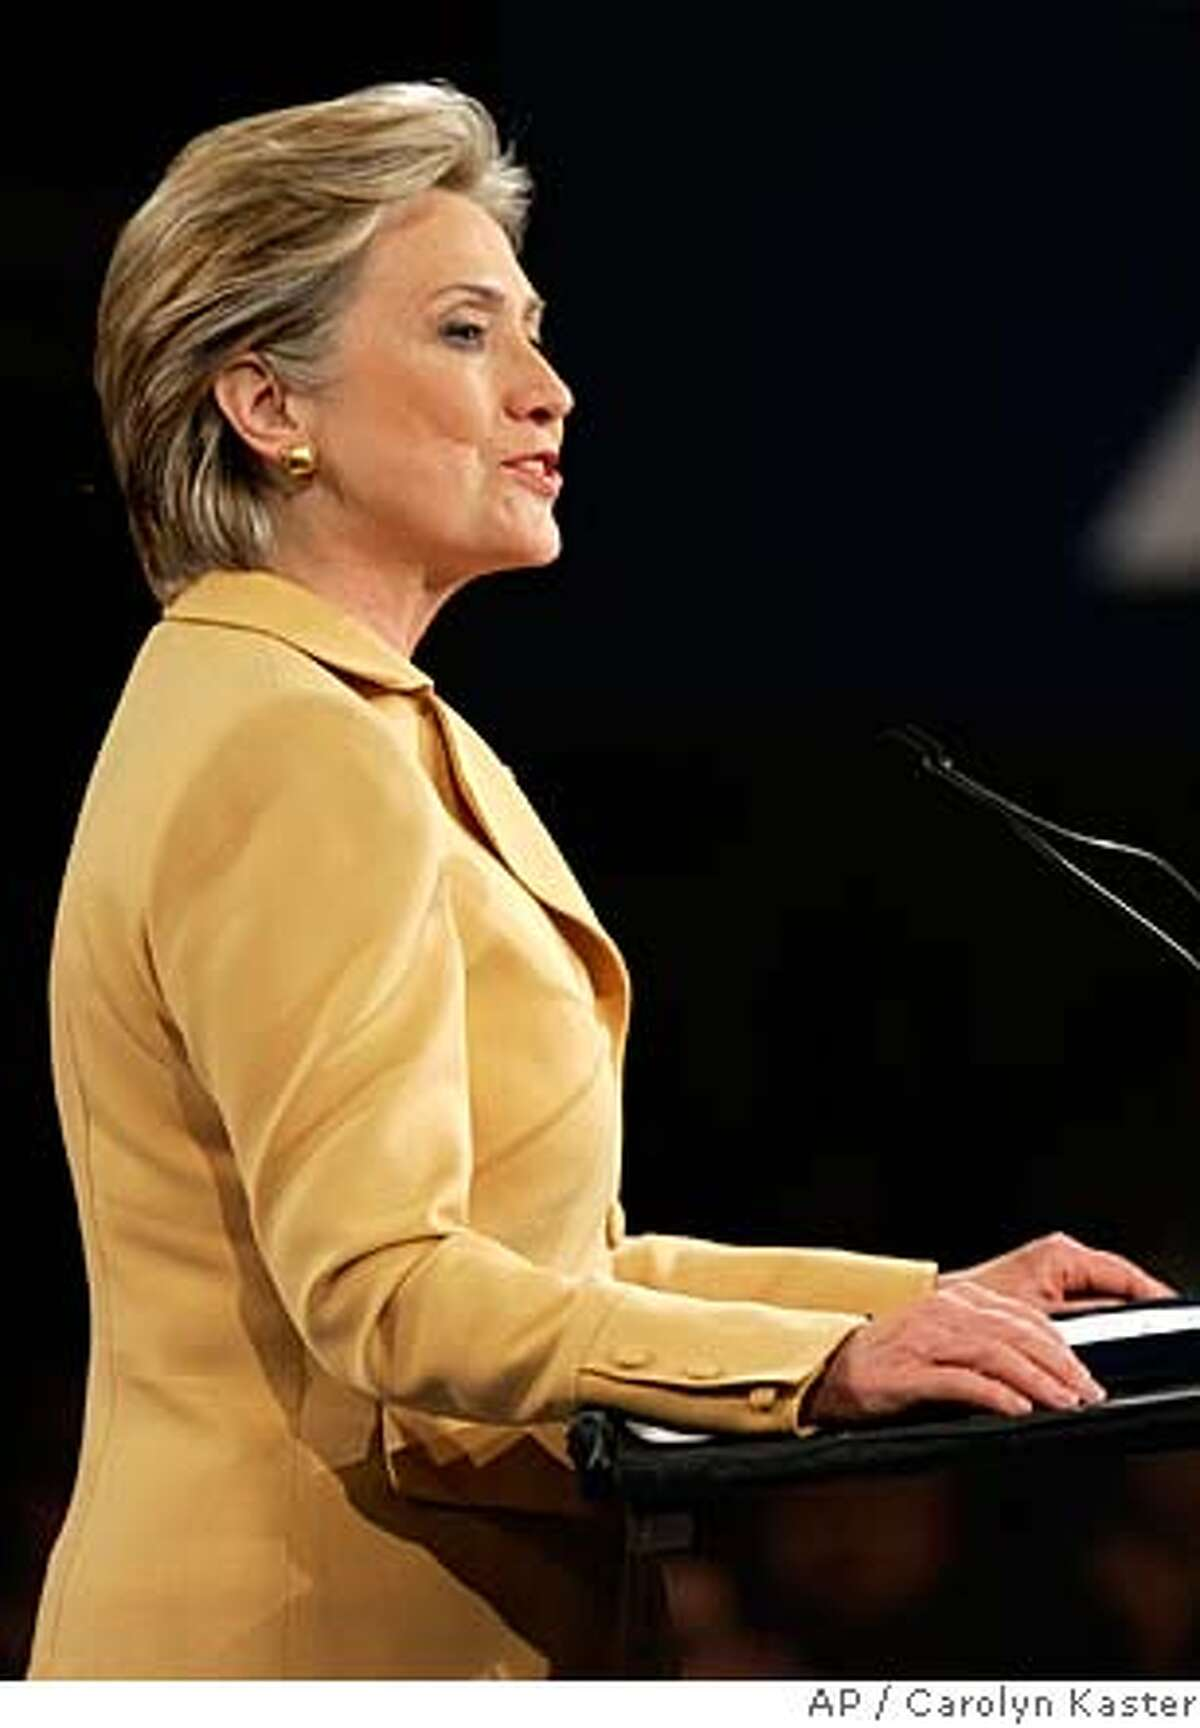 Democratic presidential hopeful Sen. Hillary Rodham Clinton, D-N.Y., address supporters at at her Super Tuesday primary night rally in New York, Tuesday, Feb. 5, 2008. (AP Photo/Carolyn Kaster)